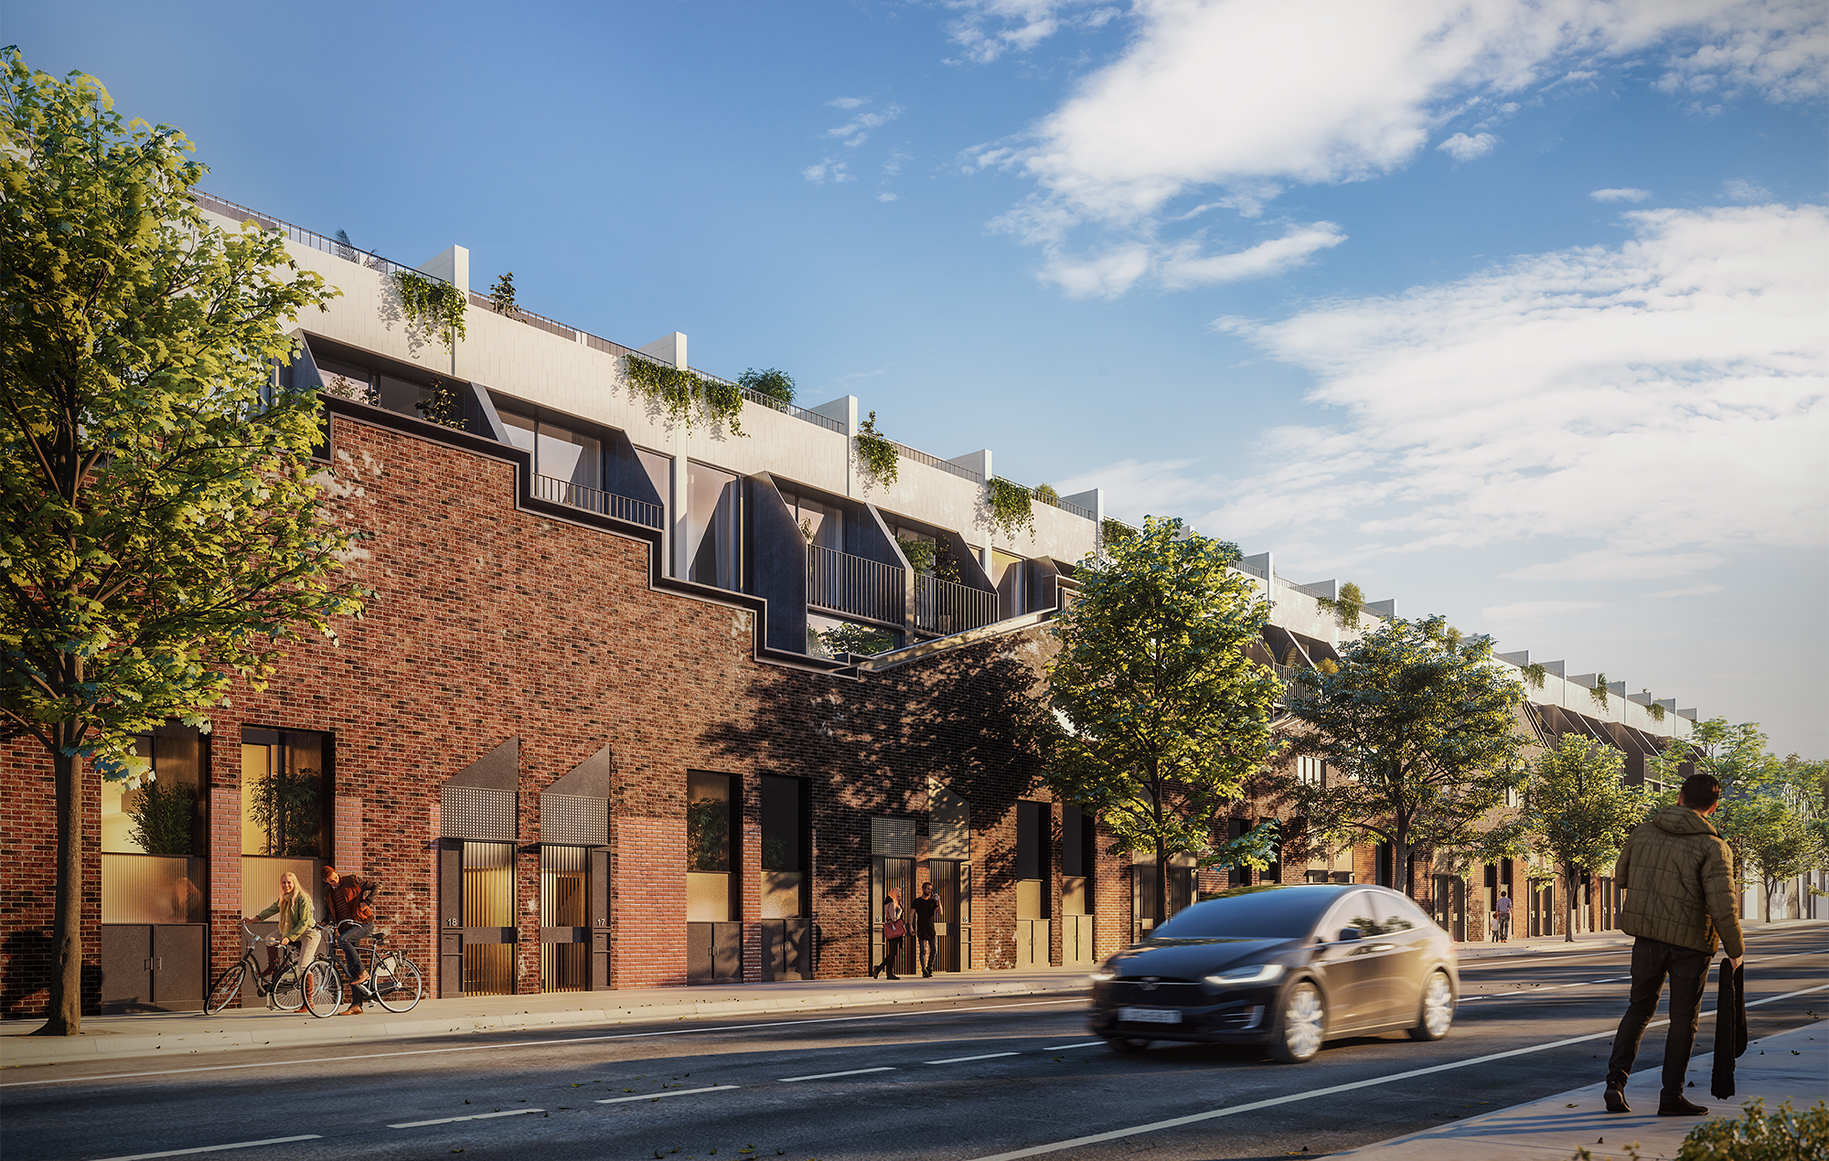 Milligan Group have also prepared a development application for Thirdi Group, who are converting an ex-industrial warehouse into 37 apartments at 29-41 William Street, Alexandria.